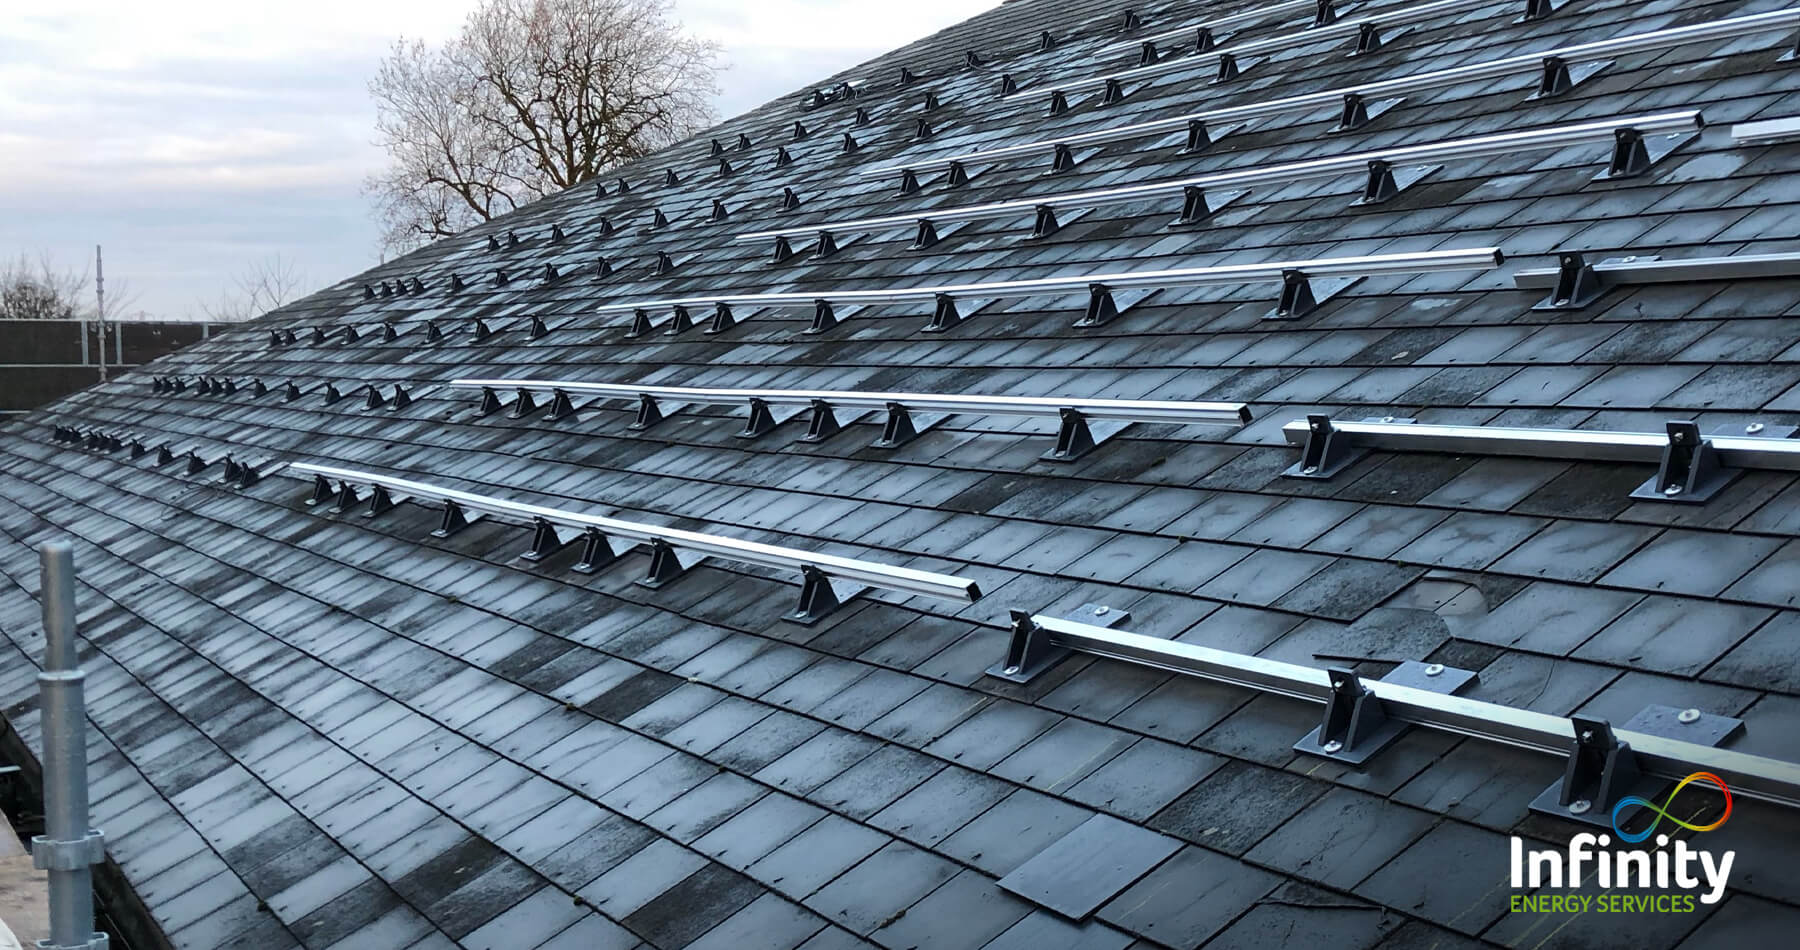 gallery solar business 6 - Solar Panels for Business